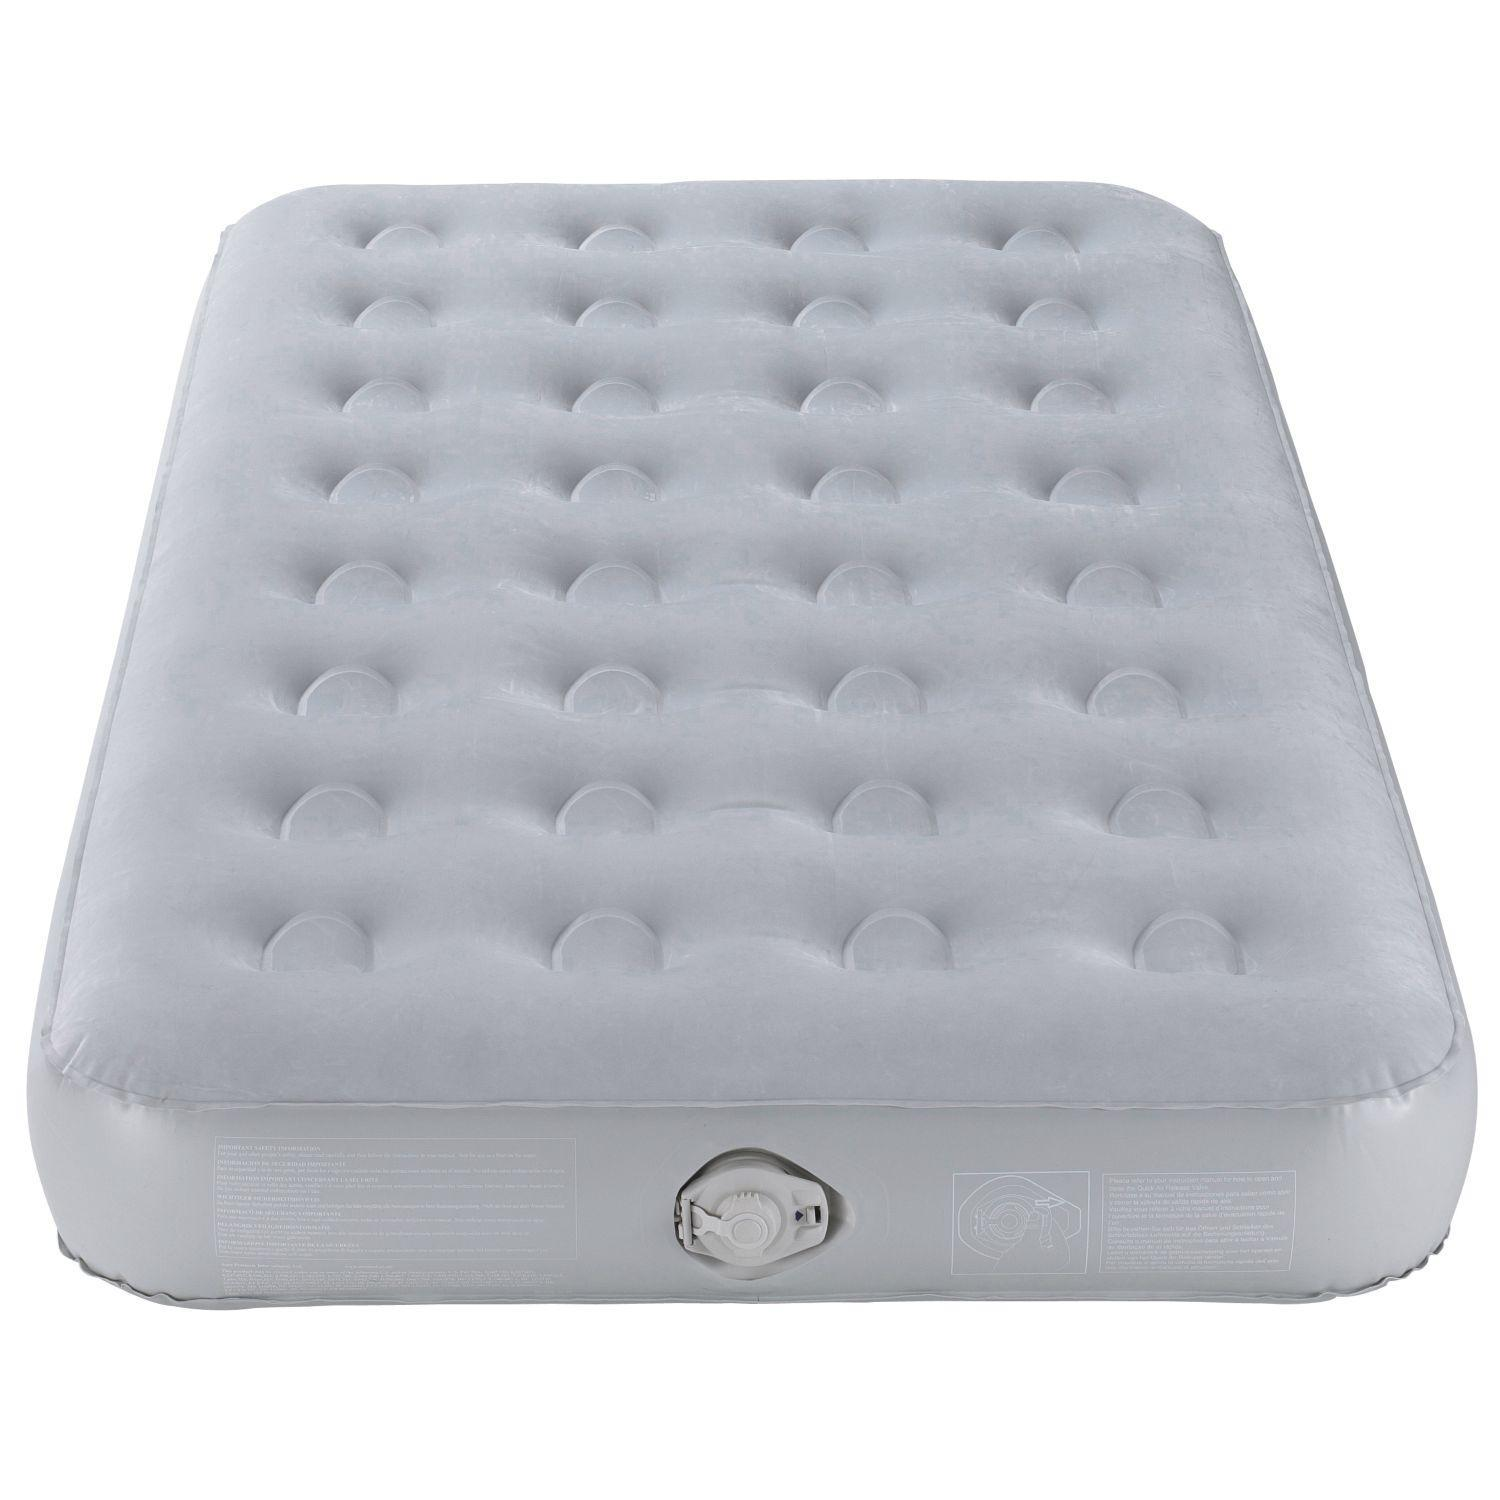 Aerobed Comfort Classic Inflatable Mattress - Single